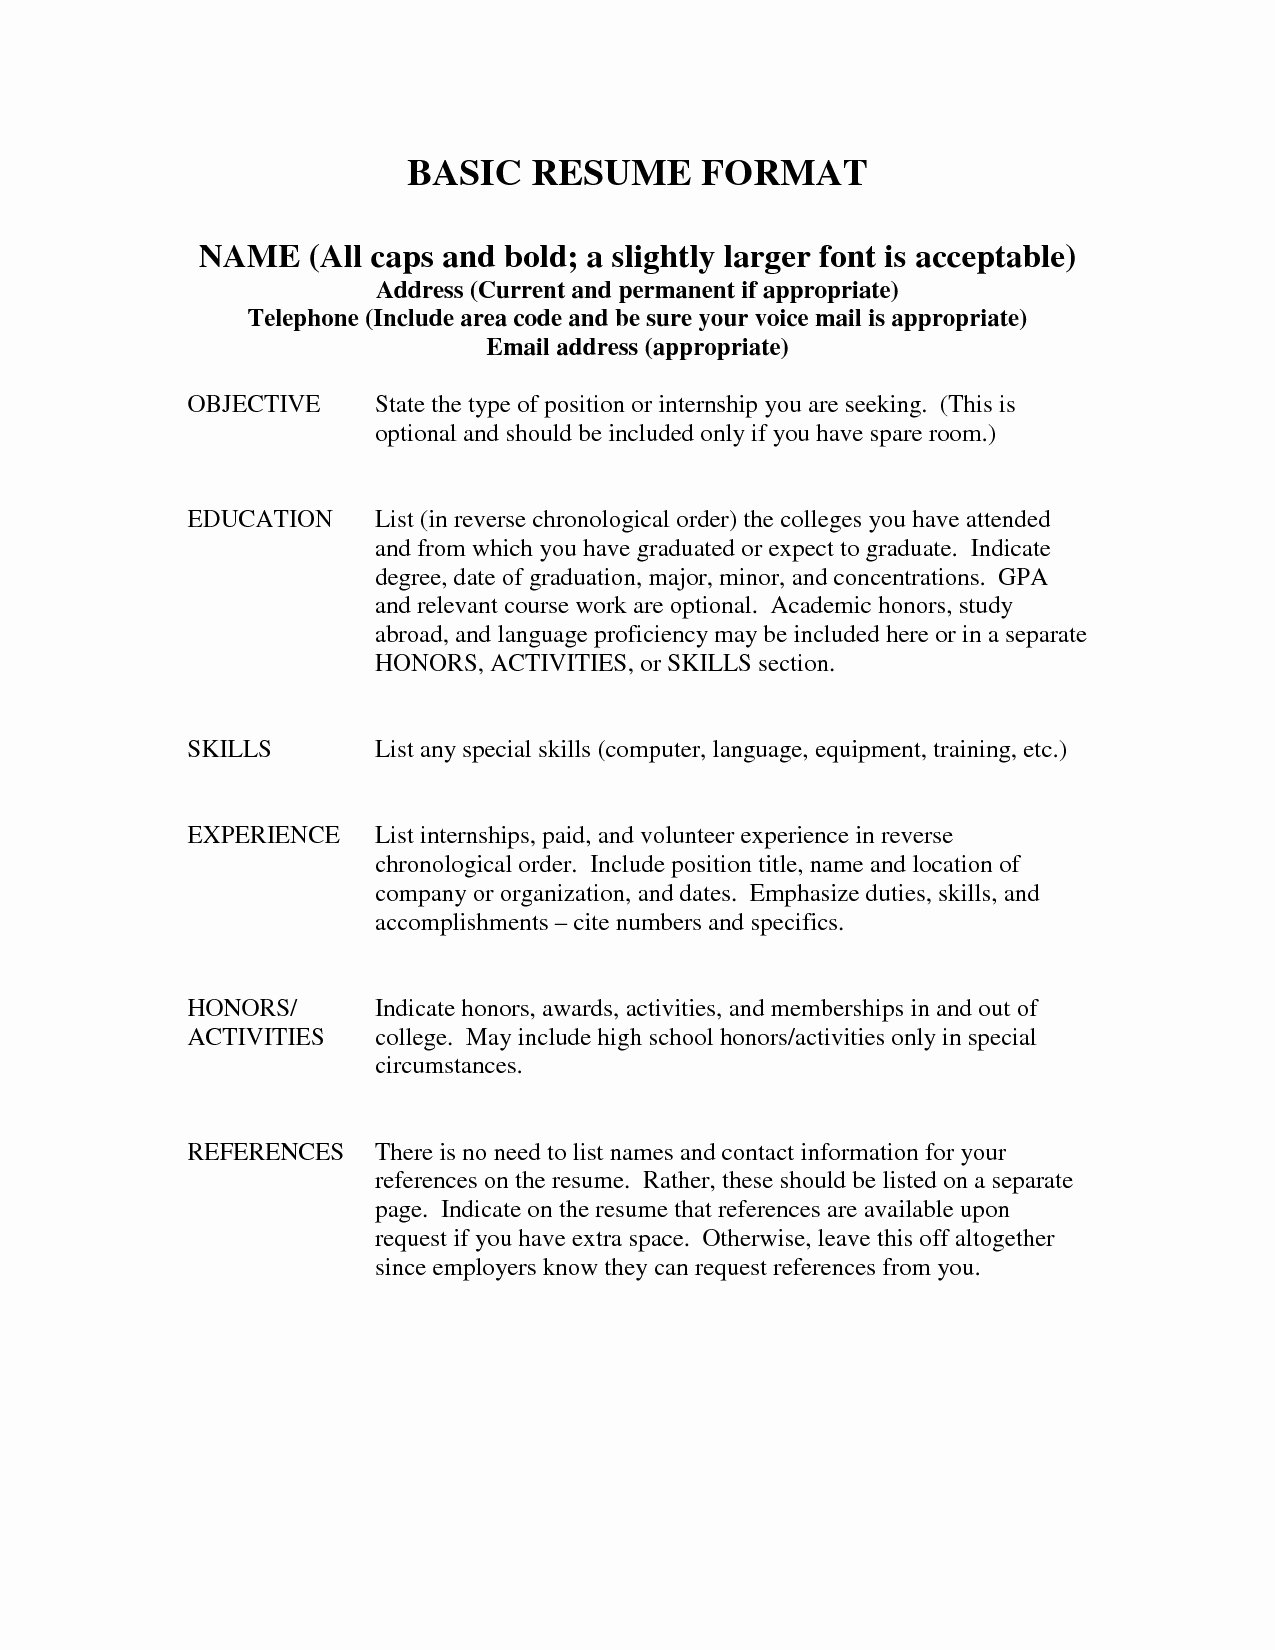 Proper Way to List References Resume Resume Ideas